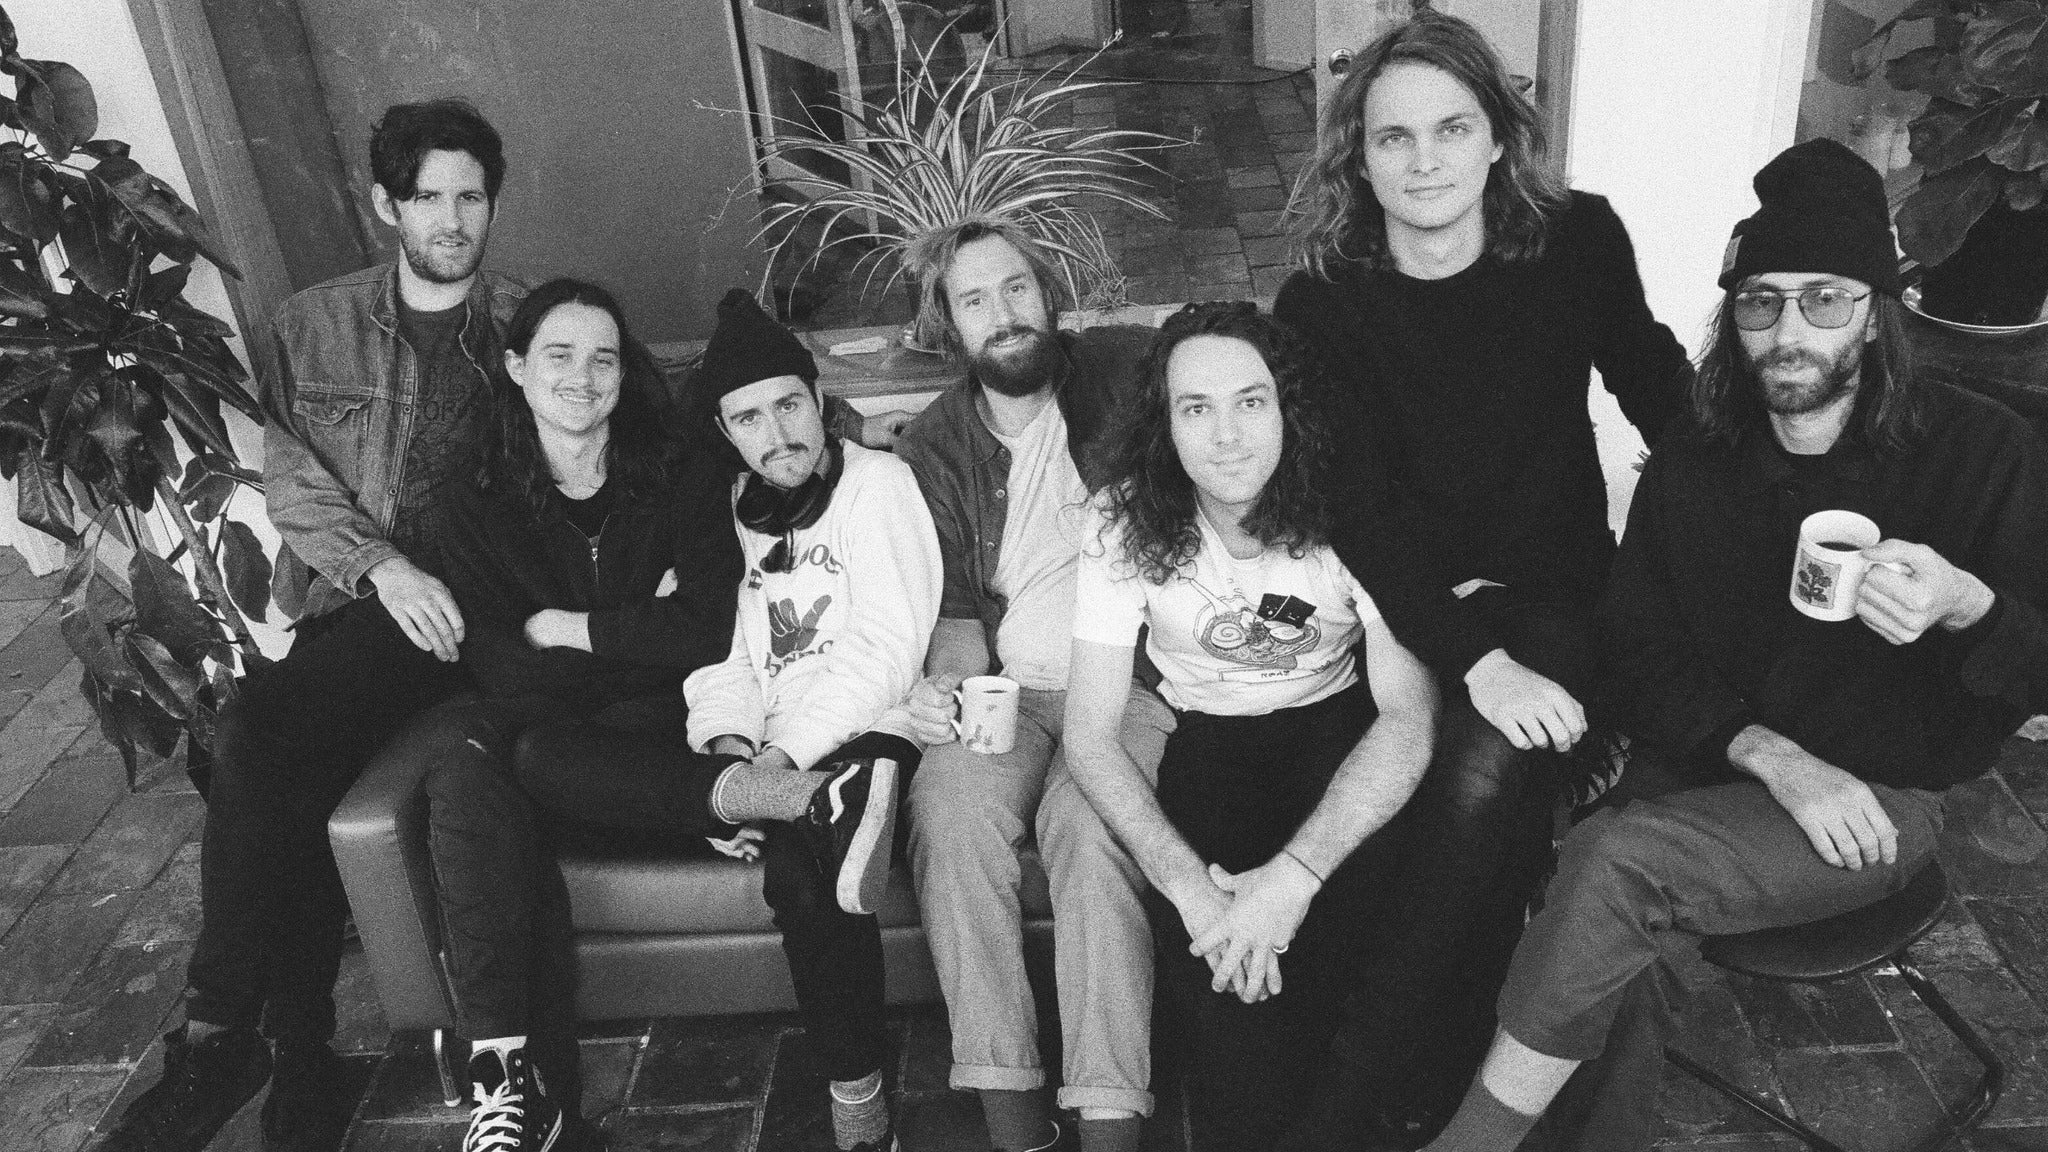 King Gizzard and the Lizard Wizard at Red Rocks Amphitheatre - Morrison, CO 80465